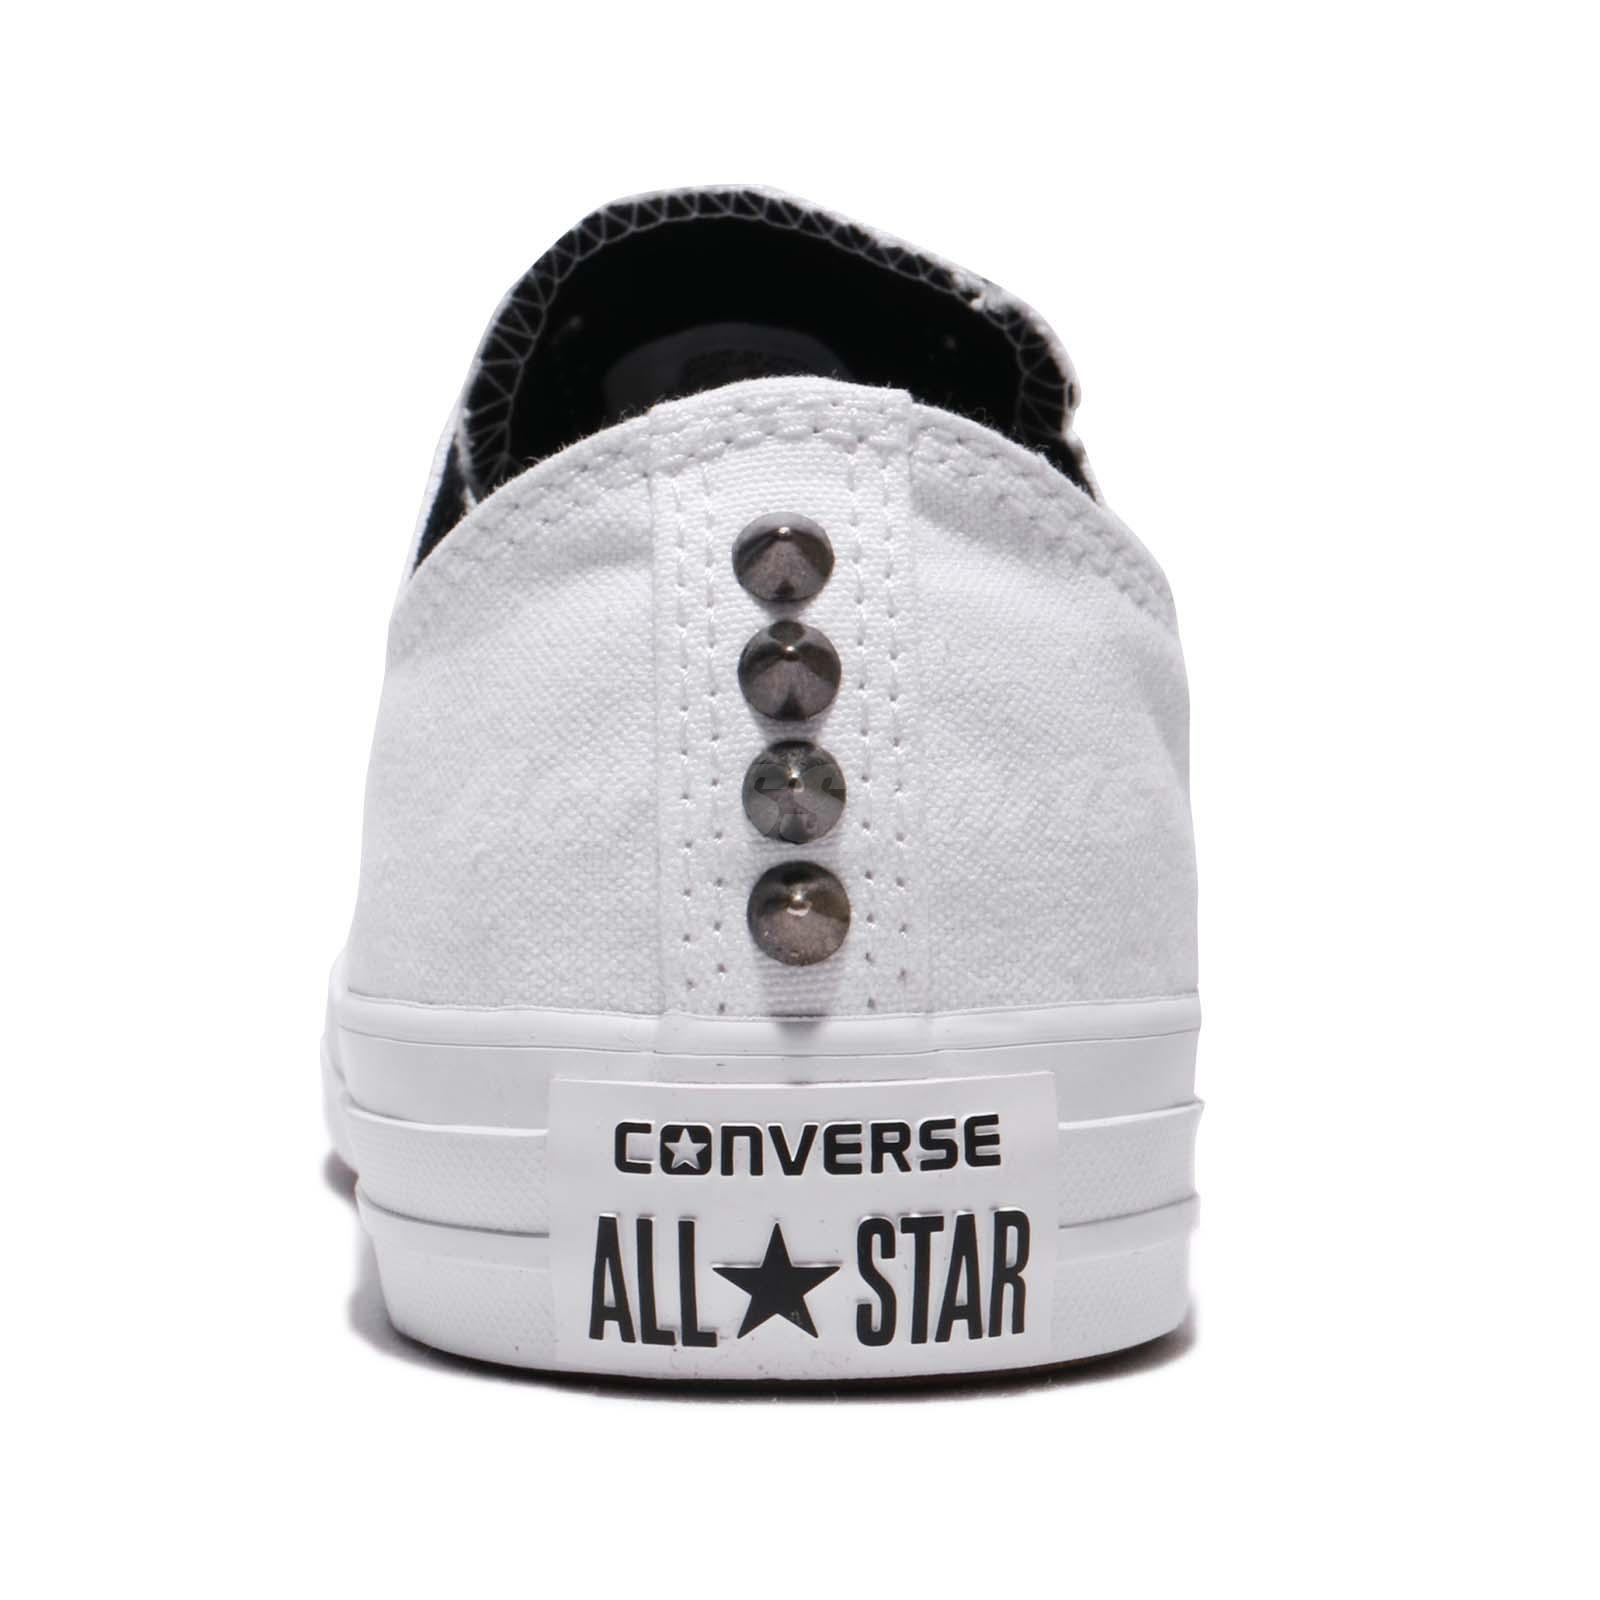 Converse Chuck Taylor All Star Low Canvas Stud White Black Women ... 57a48b6be